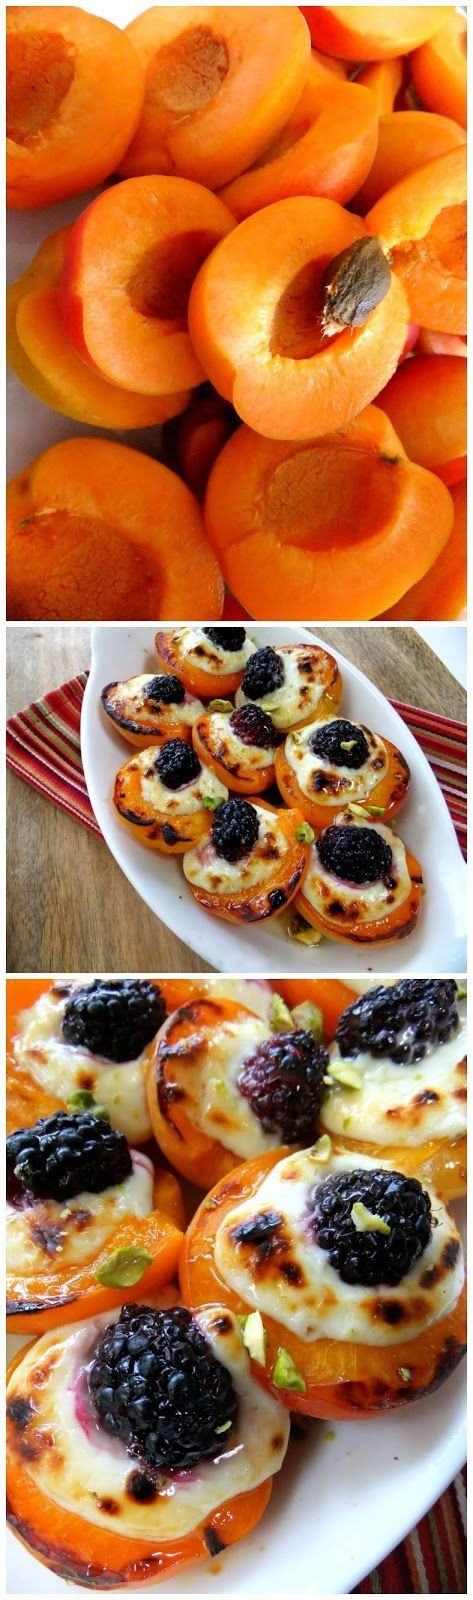 Roasted Apricots, with Mascarpone and Blackberry Drizzled with Honey by prouditaliancook via recipefavorite